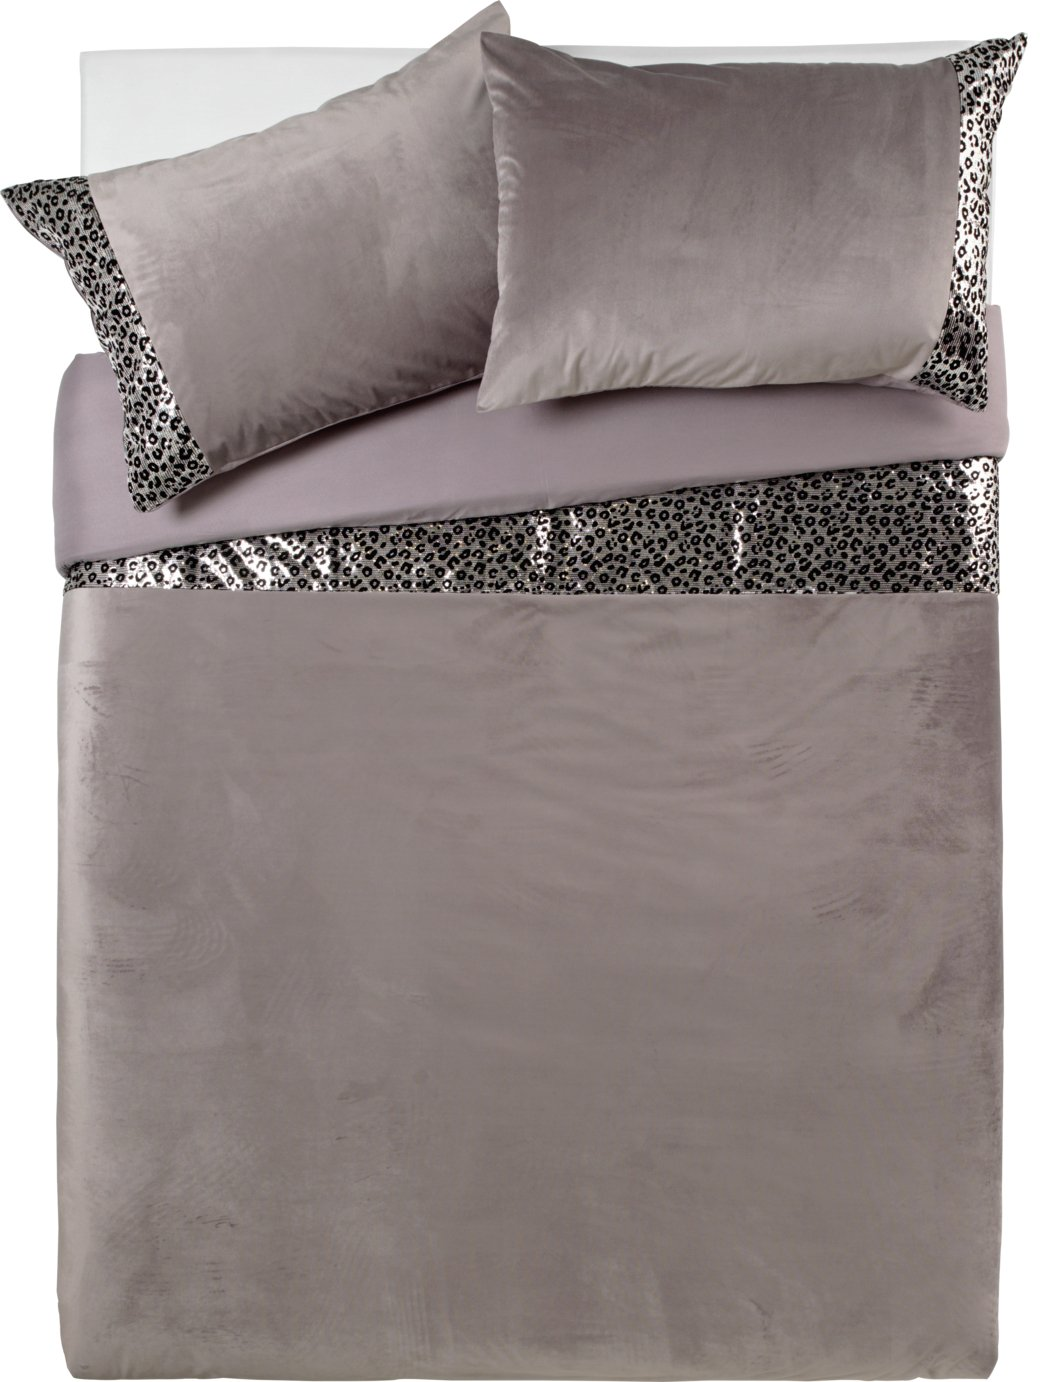 Argos Home Sequin Leopard Print Bedding Set - Double